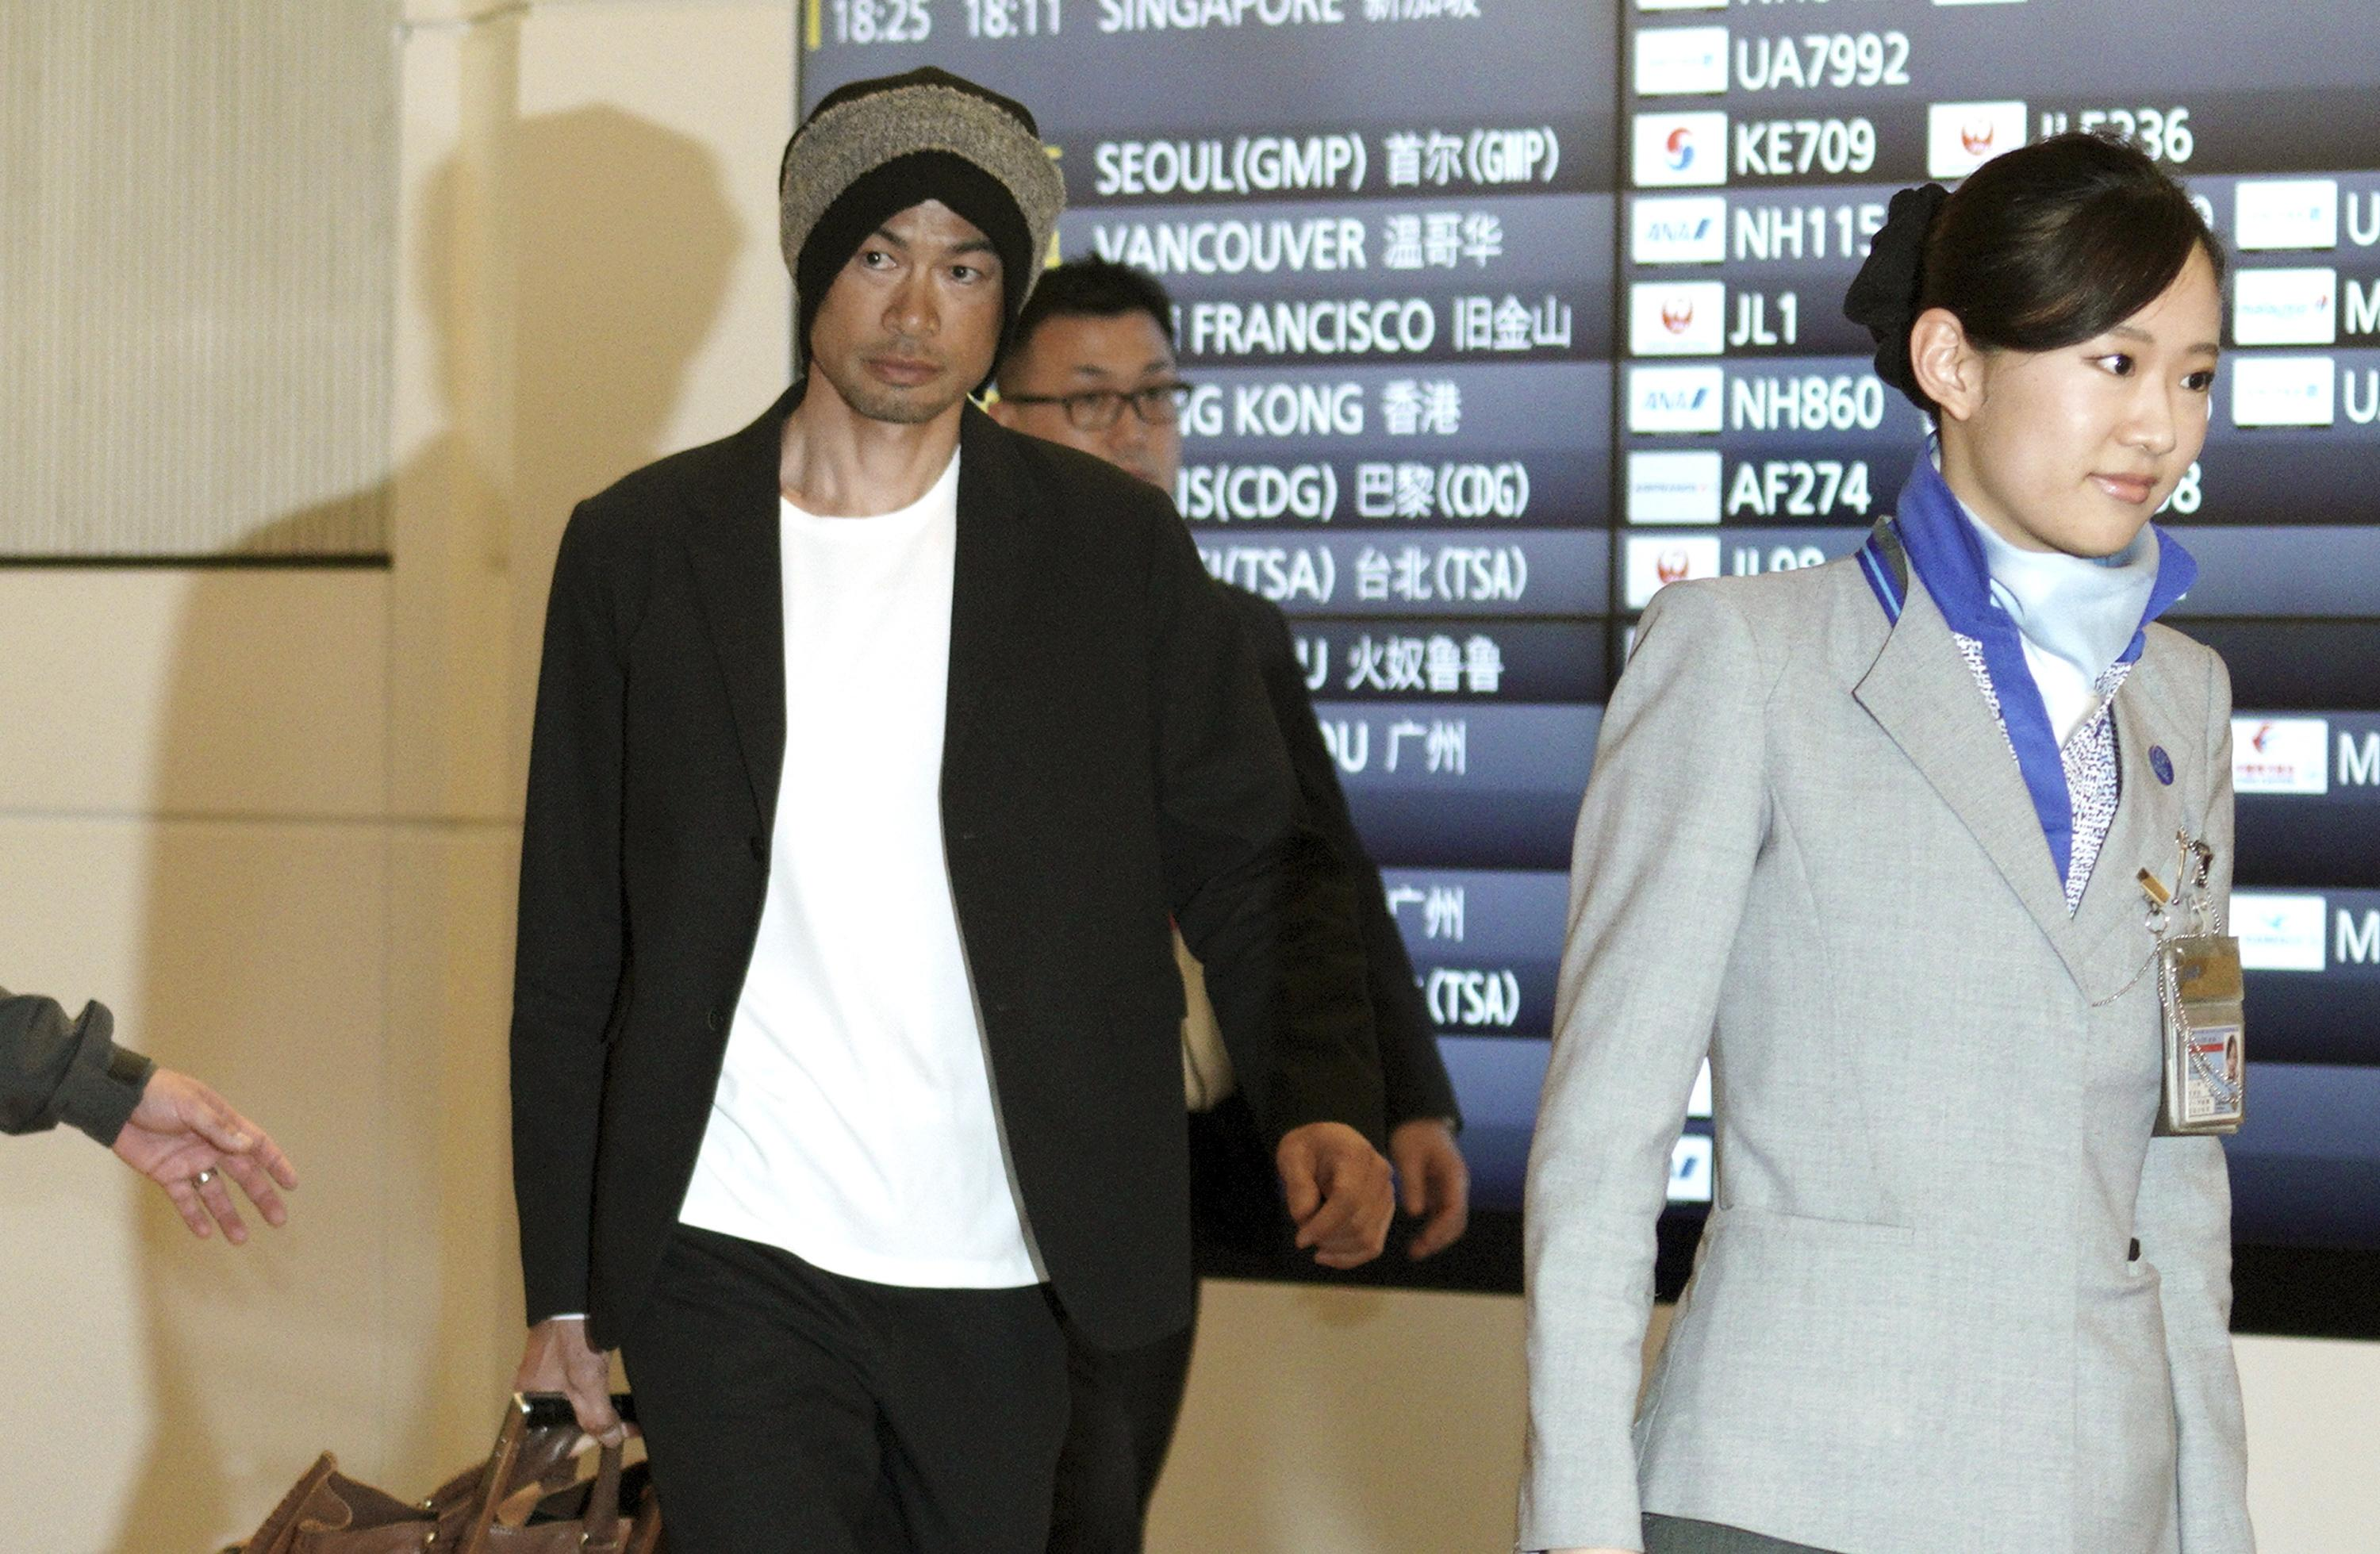 aaf3fb3491 Seattle s Ichiro Suzuki is escorted upon his team s arrival at Haneda  Airport in Tokyo on Friday